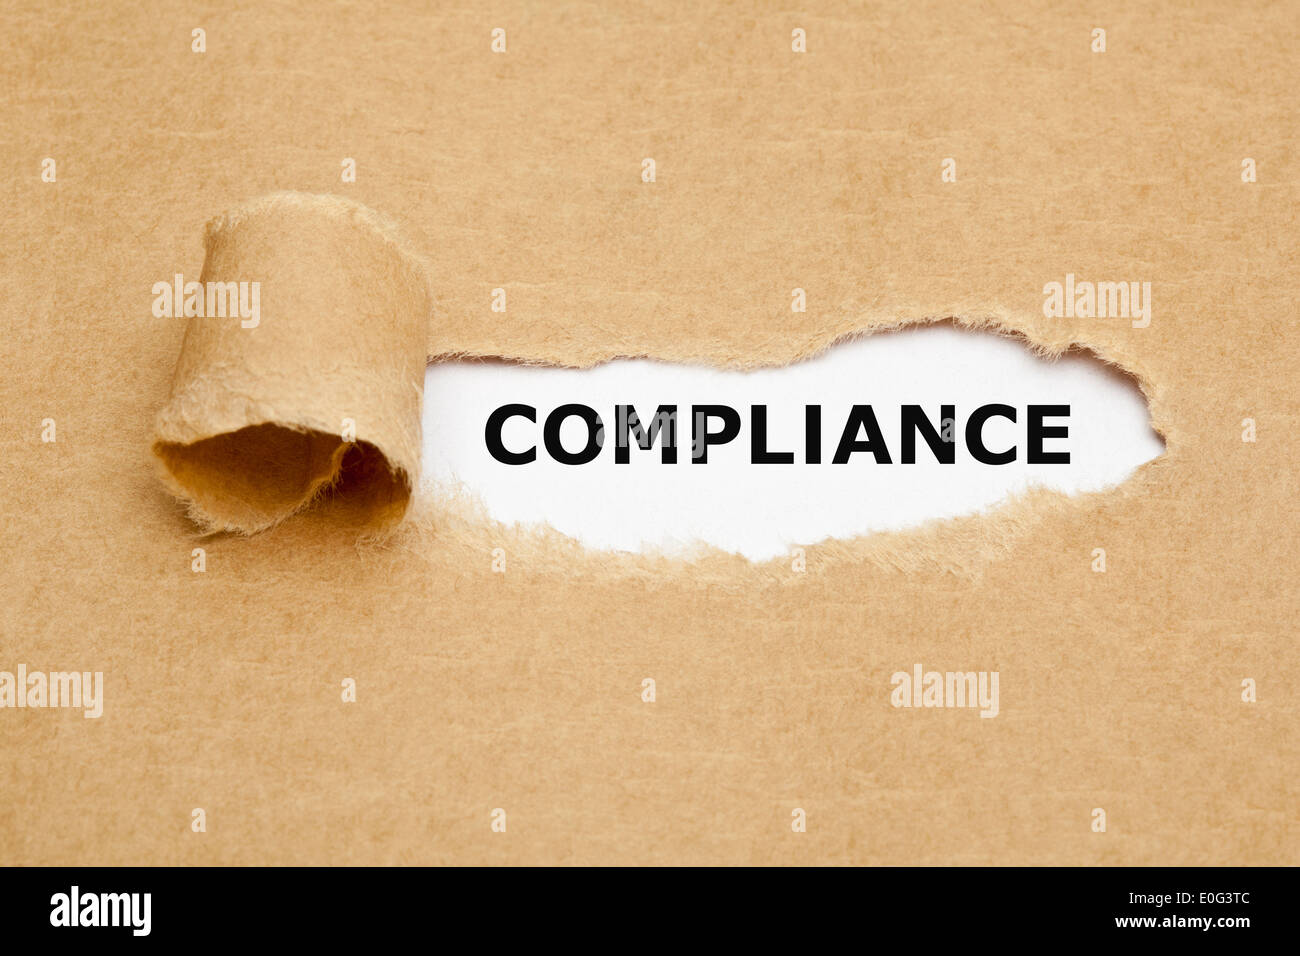 The word Compliance appearing behind torn brown paper. - Stock Image